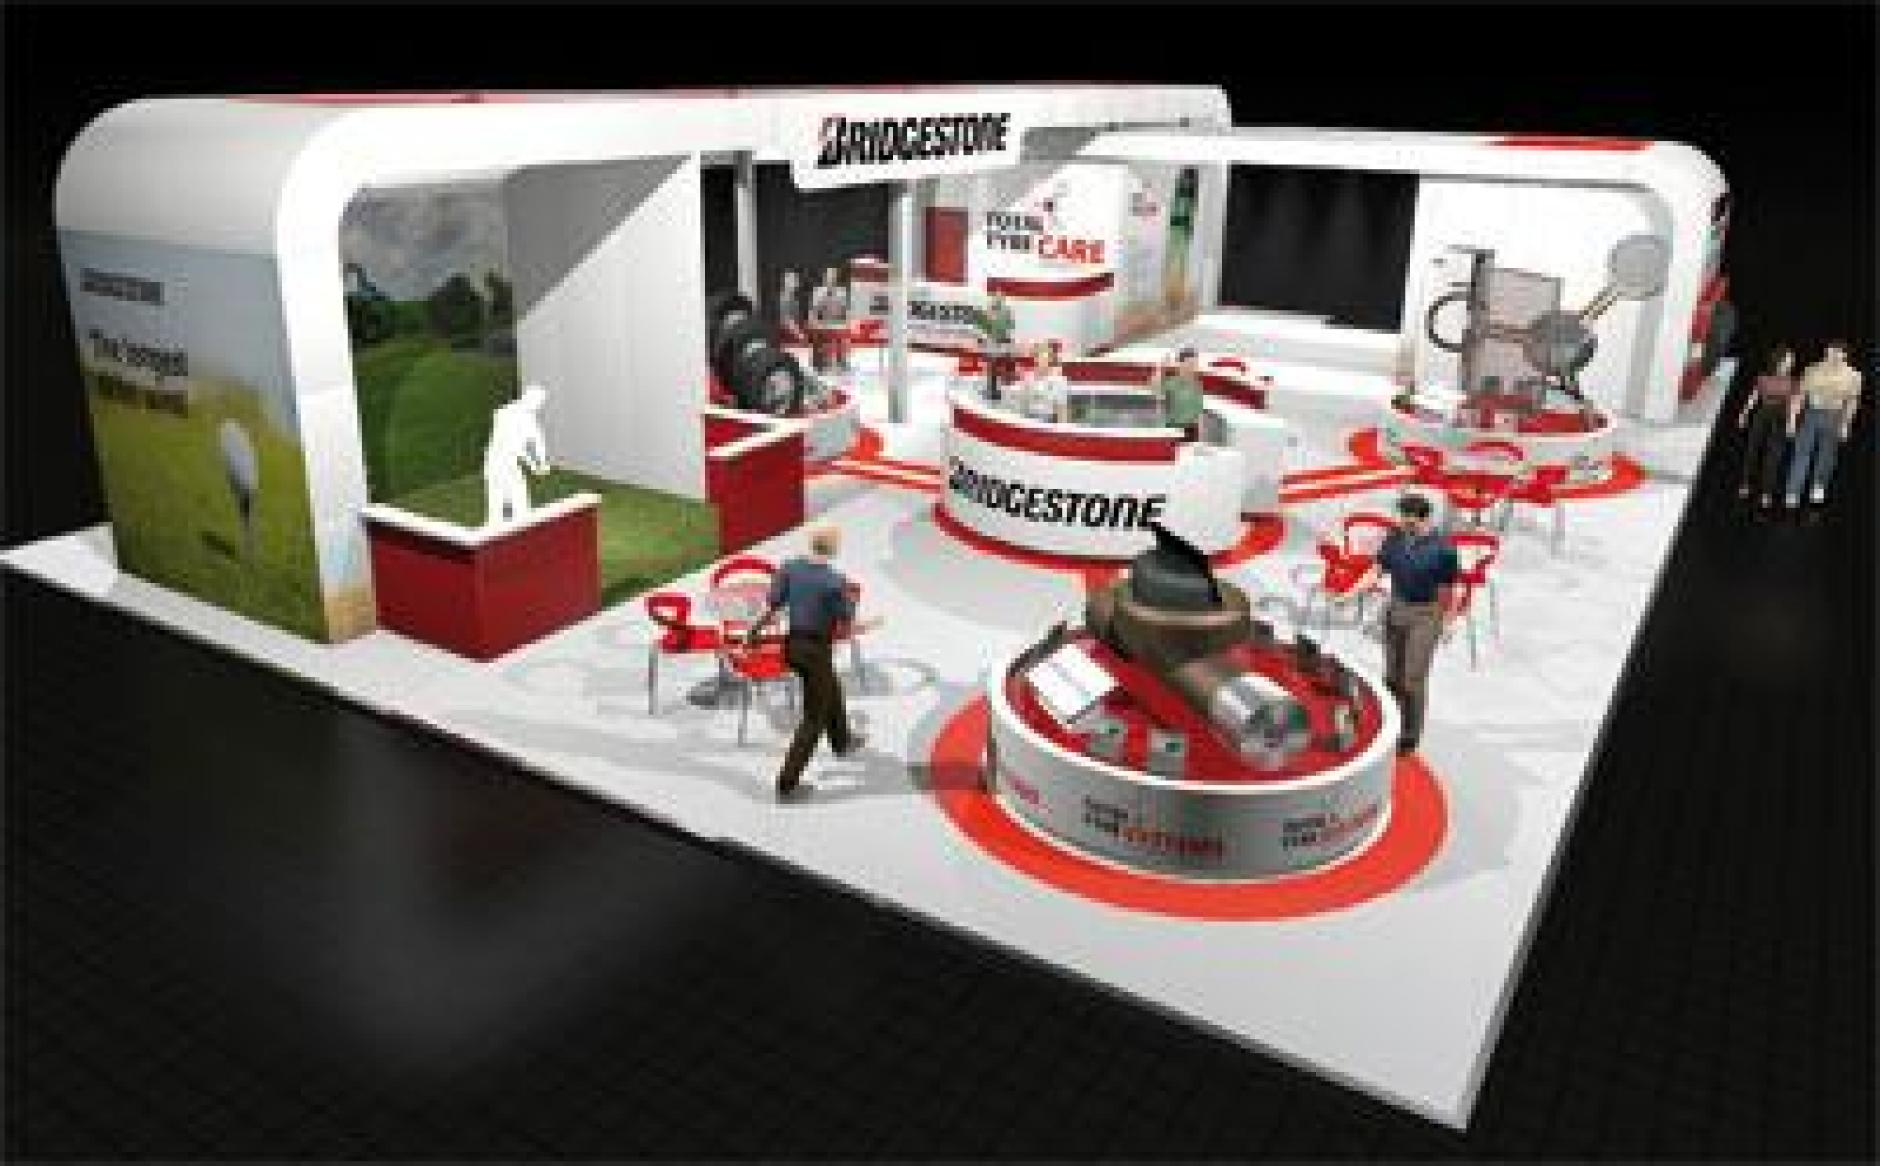 cv show bridgestone about more than just tyres commercial although there will be tyres on the bridgestone stand the theme this year will be total tyre care more than tyres the range of services on show will